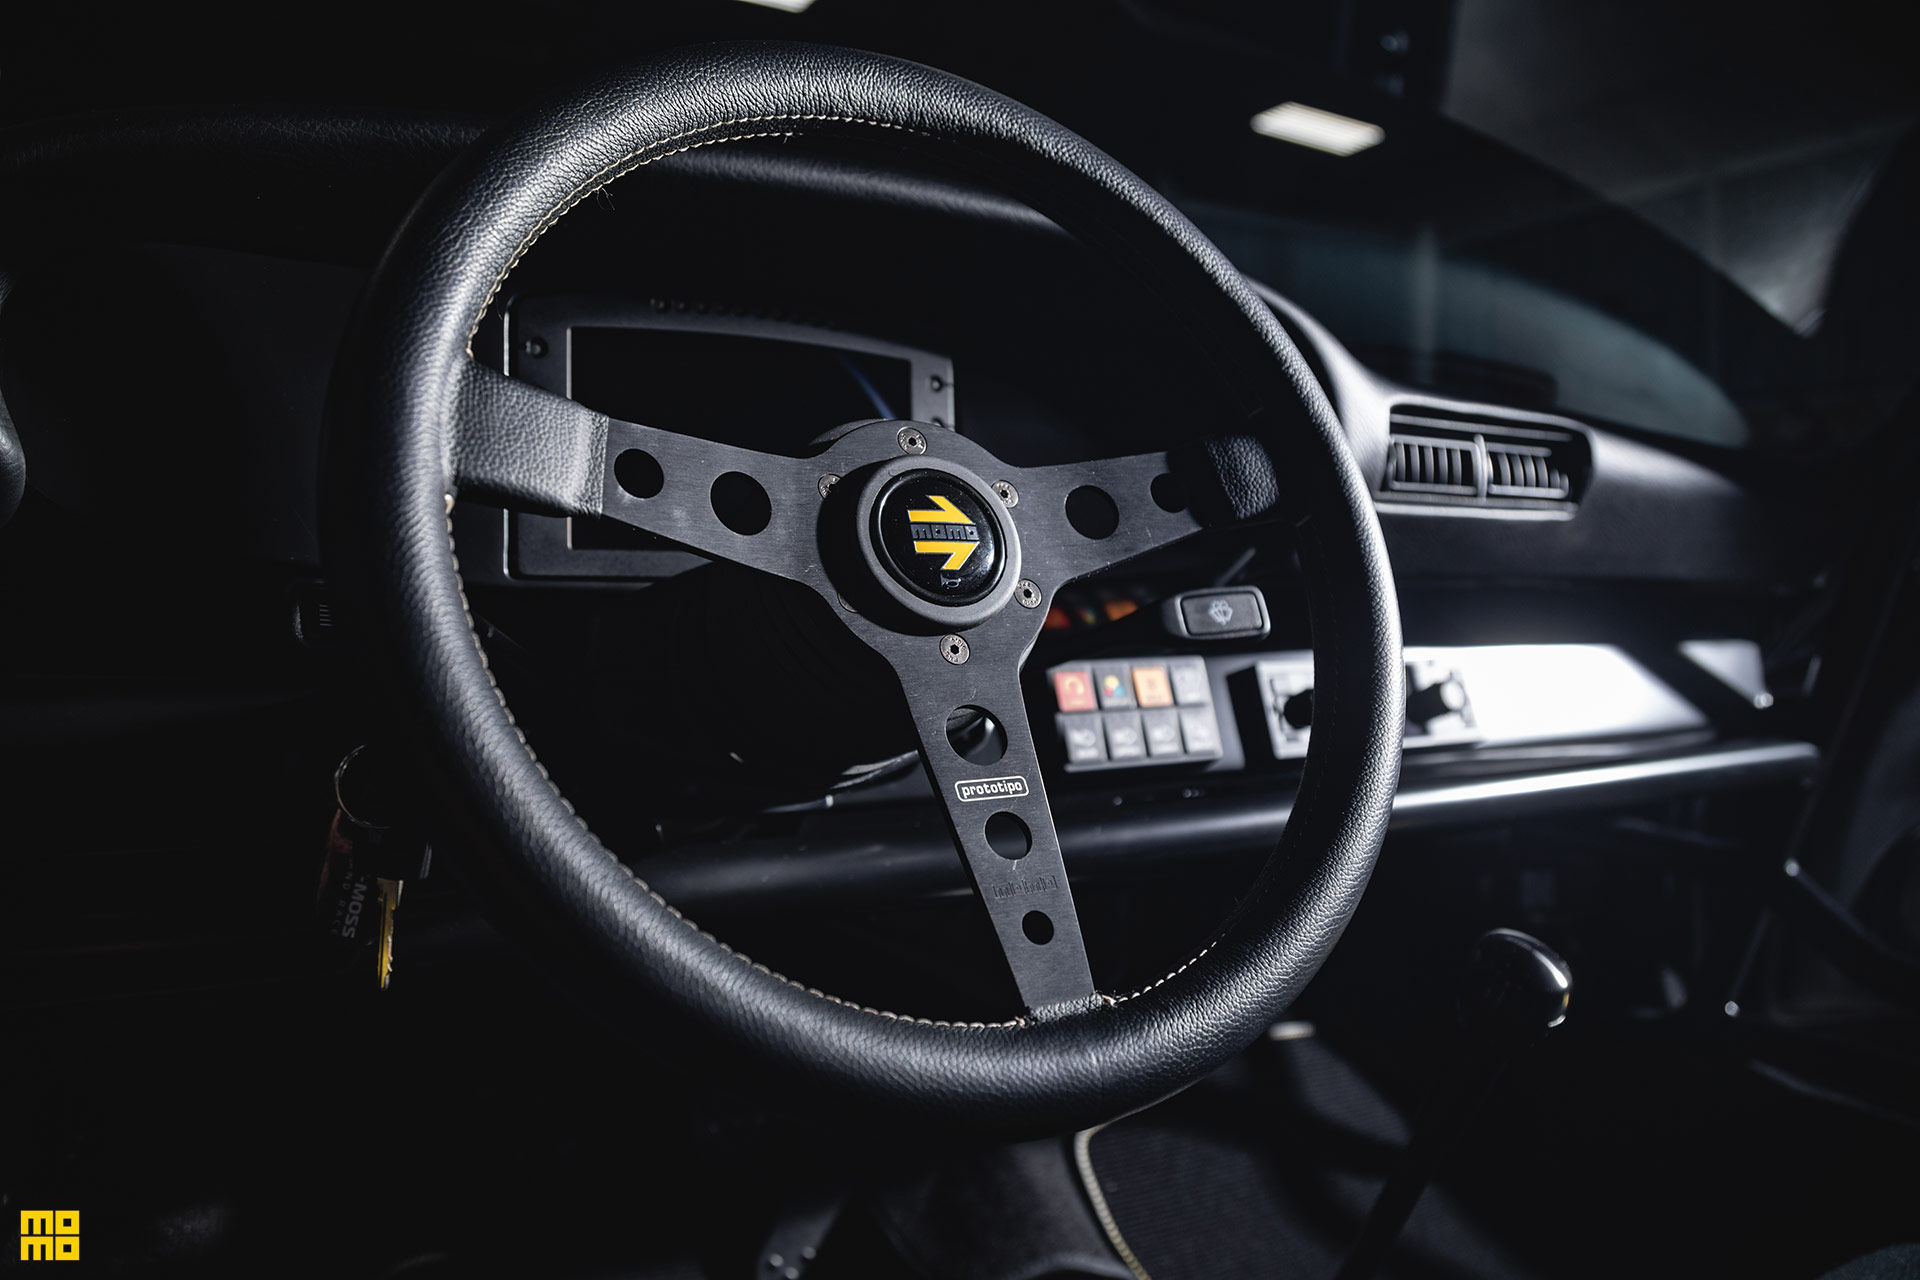 Kelly-Moss-Road-and-Race-Porsche-911-Willy-Safari-8